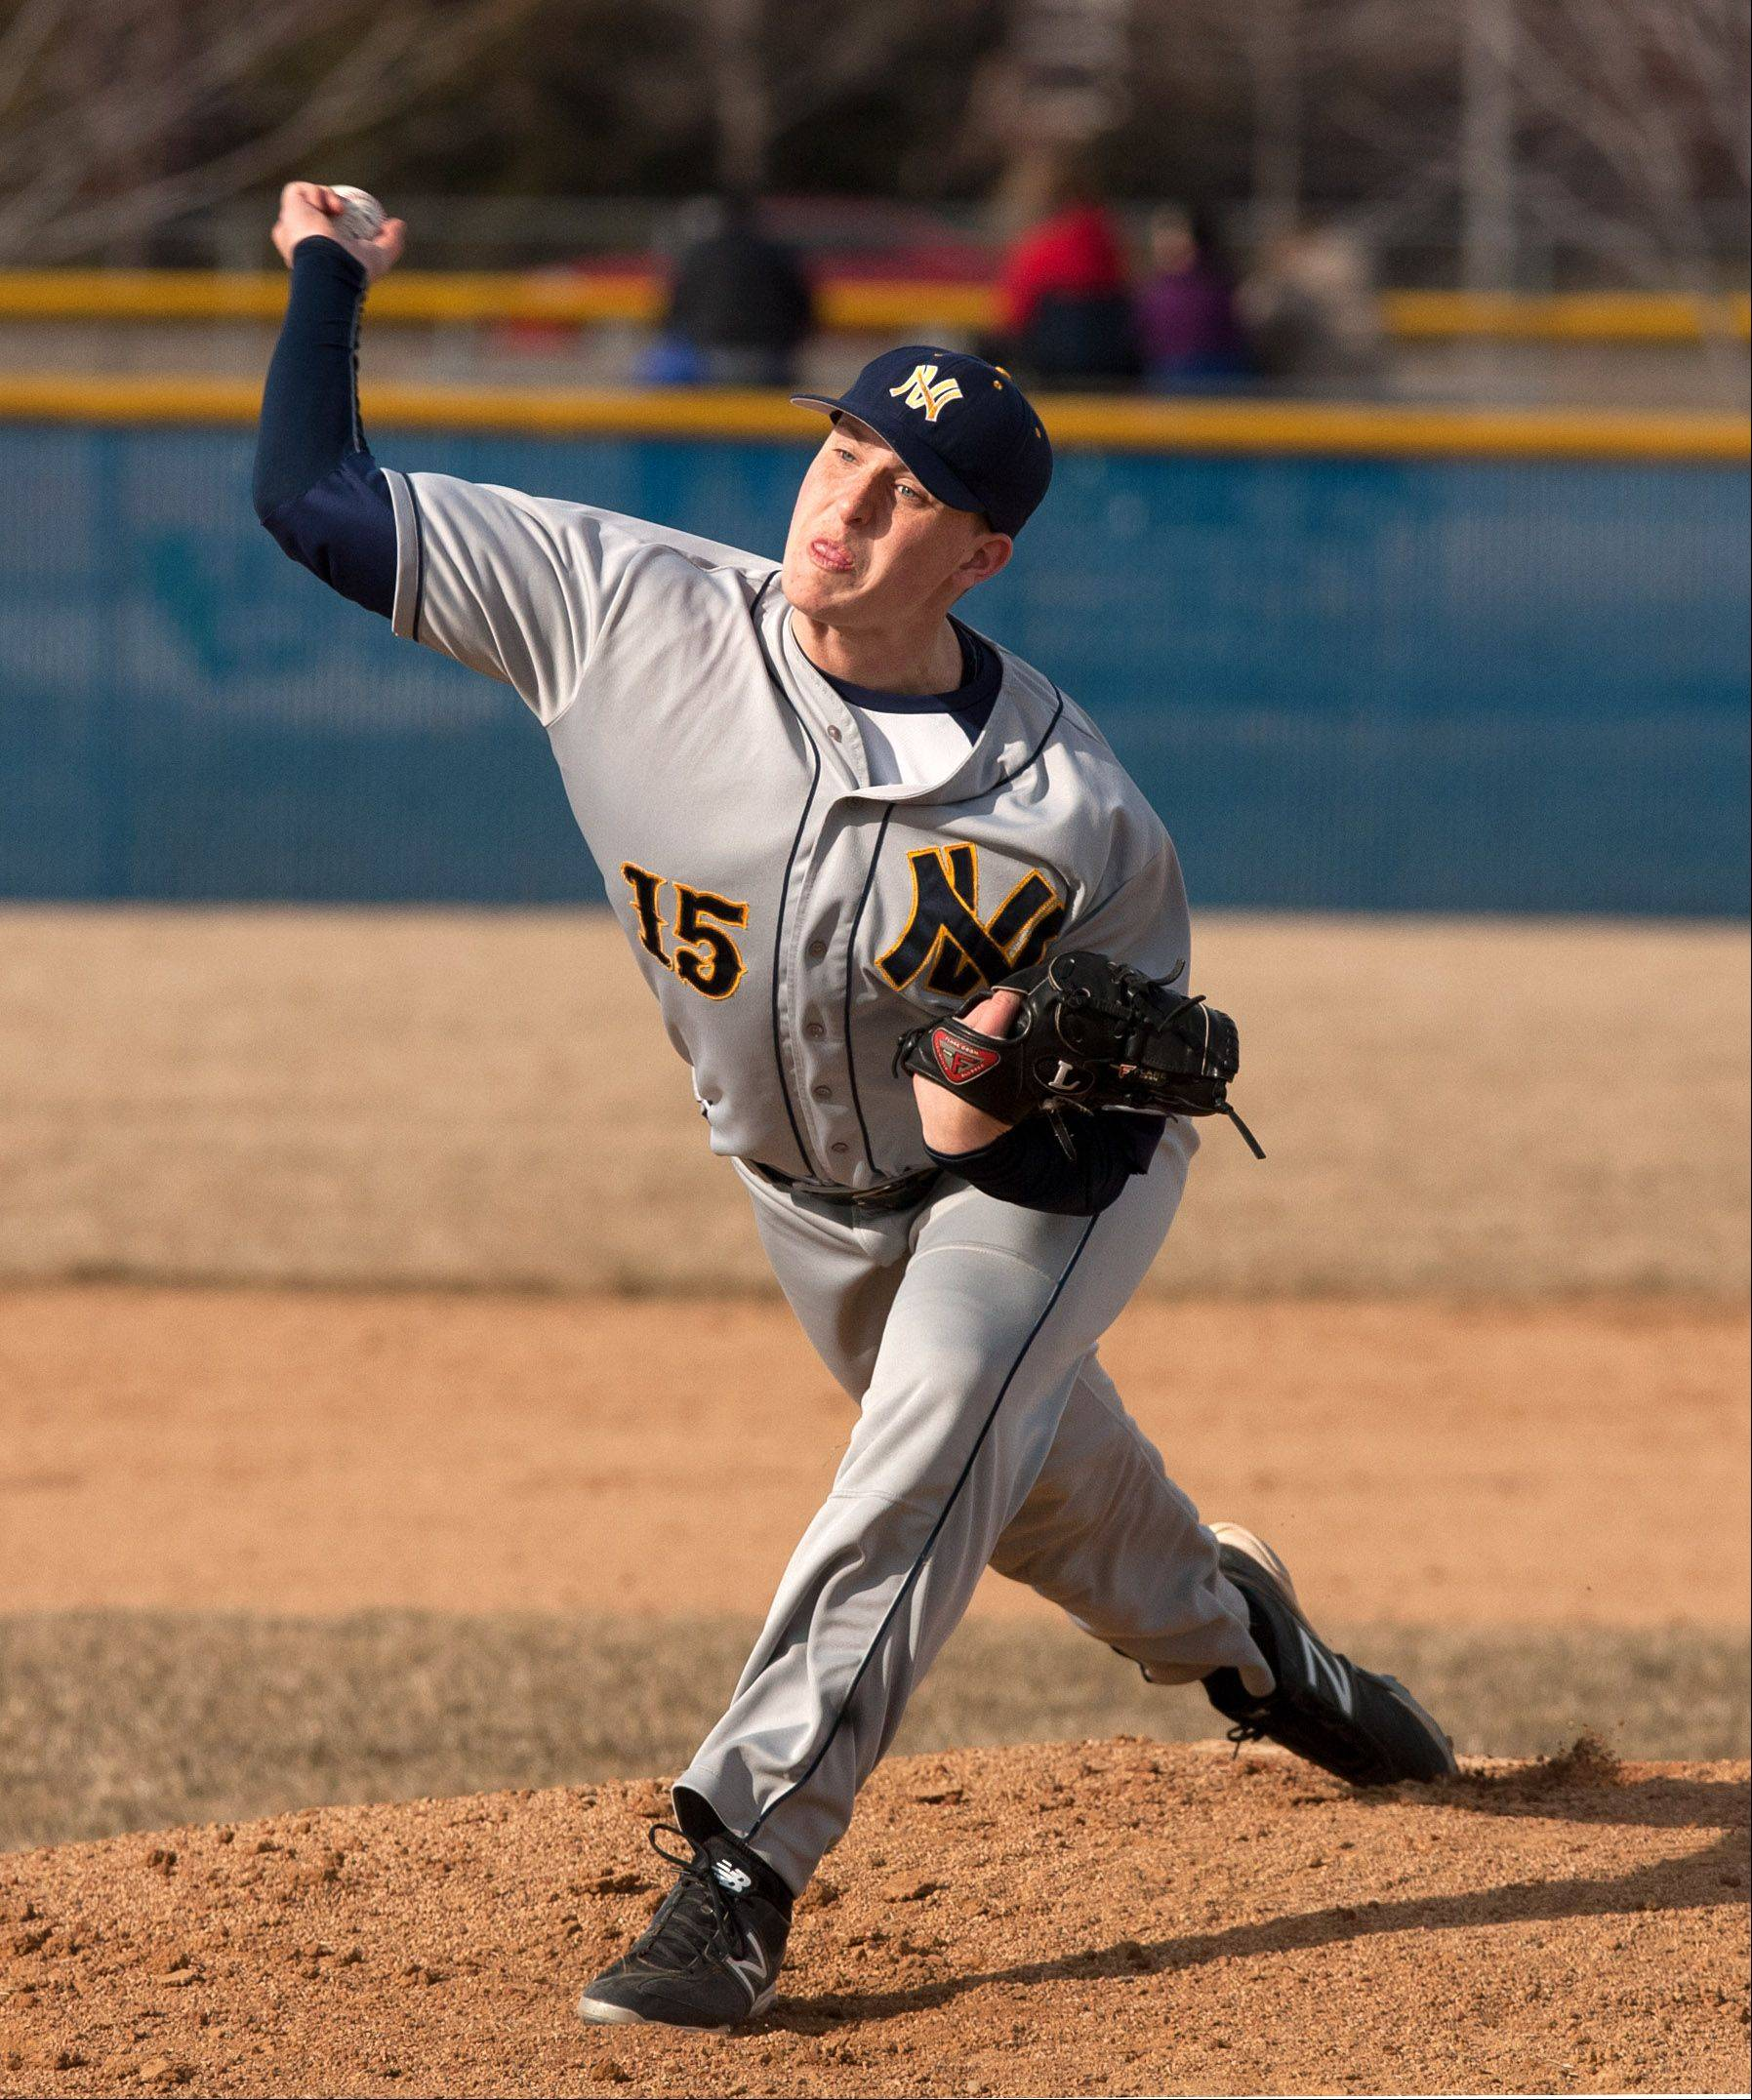 Neuqua Valley pitcher Cody Coll delivers a pitch during boys baseball action in Naperville.